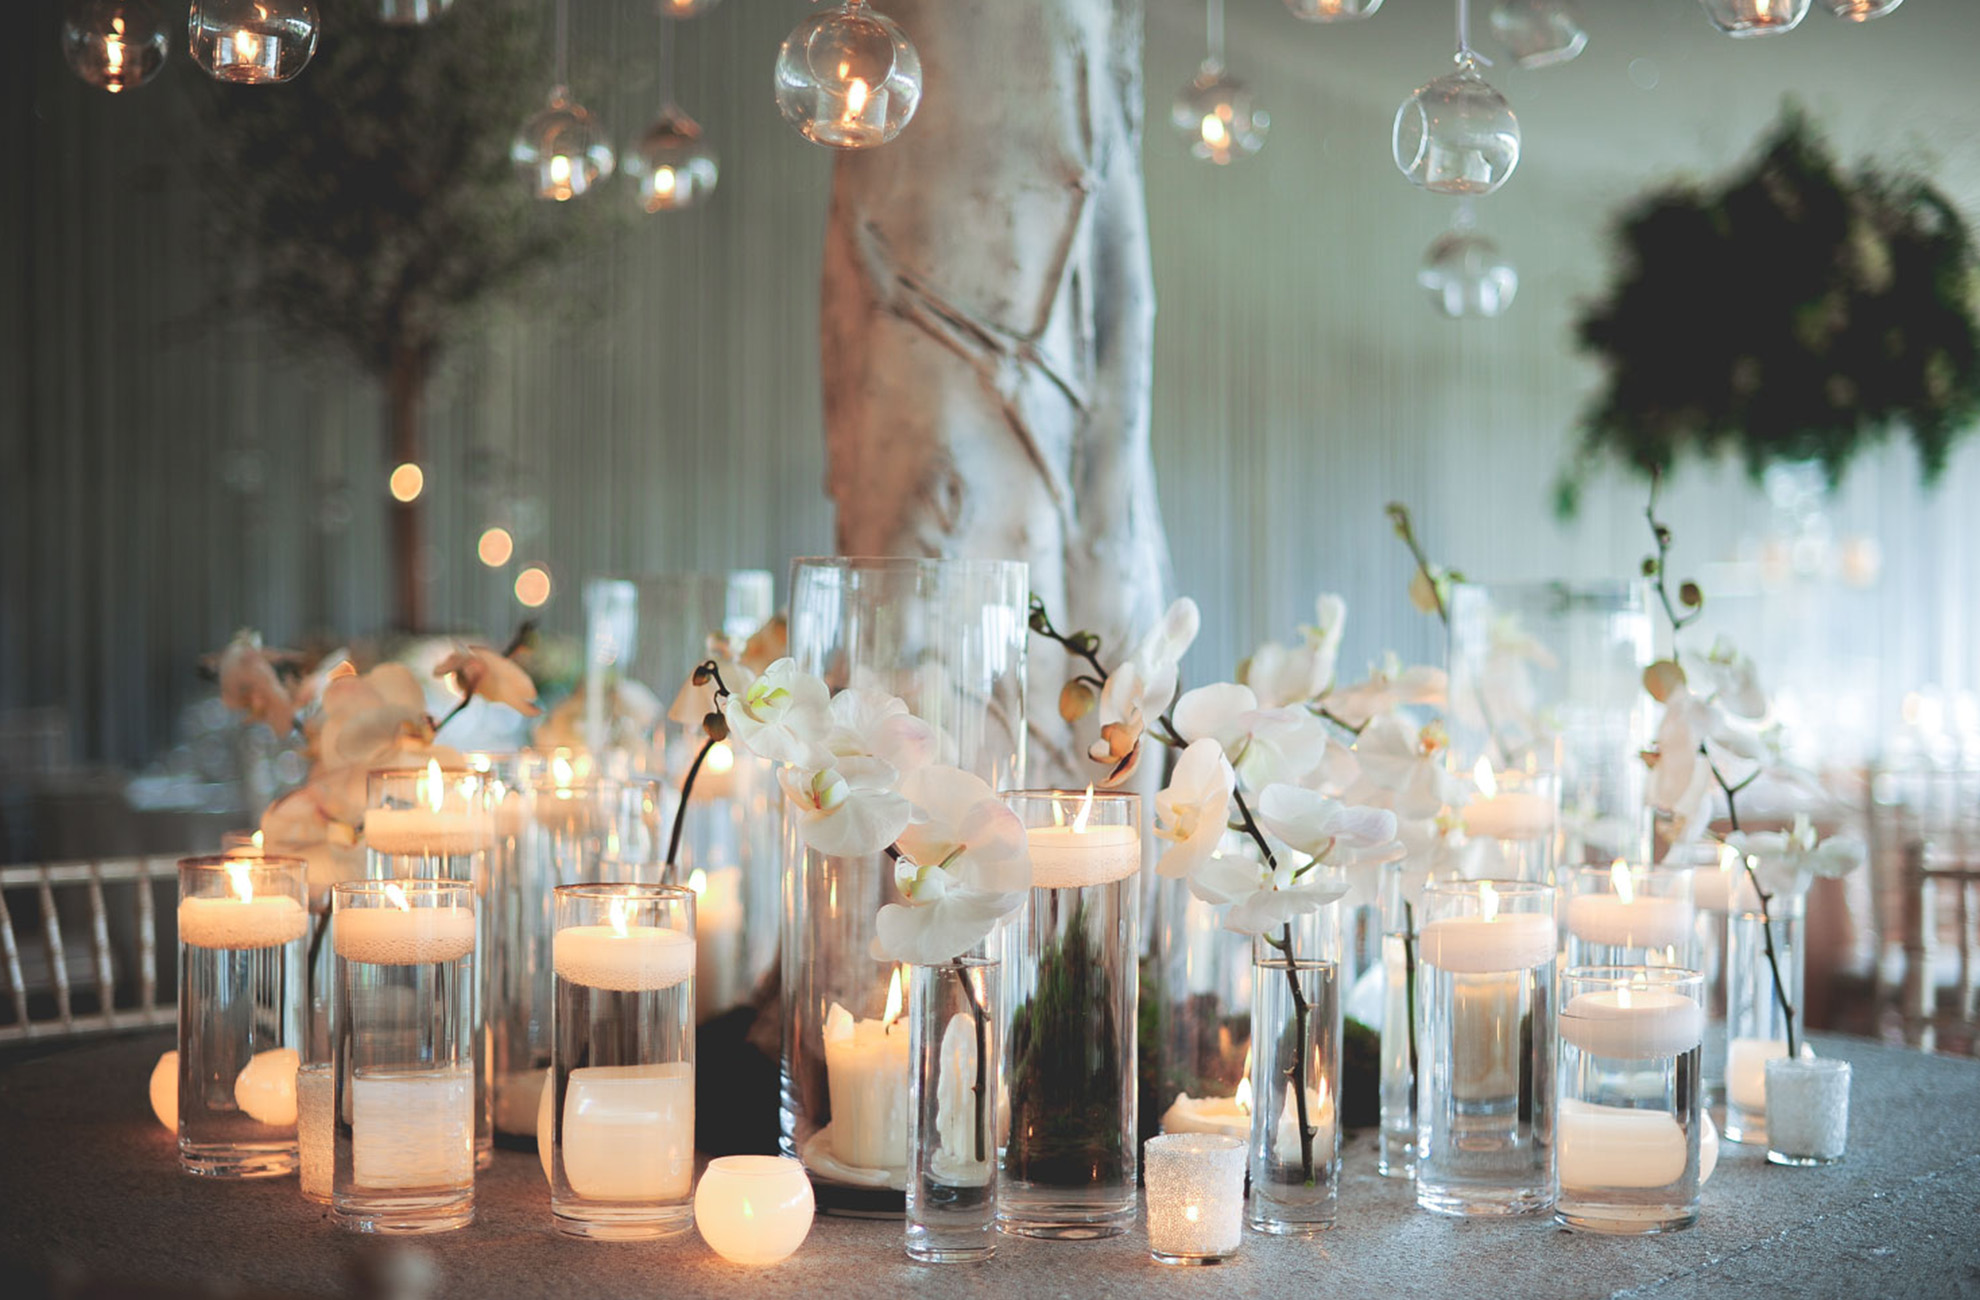 Add scented candles to your table centrepieces to remind you of your spring wedding day at Combermere Abbey